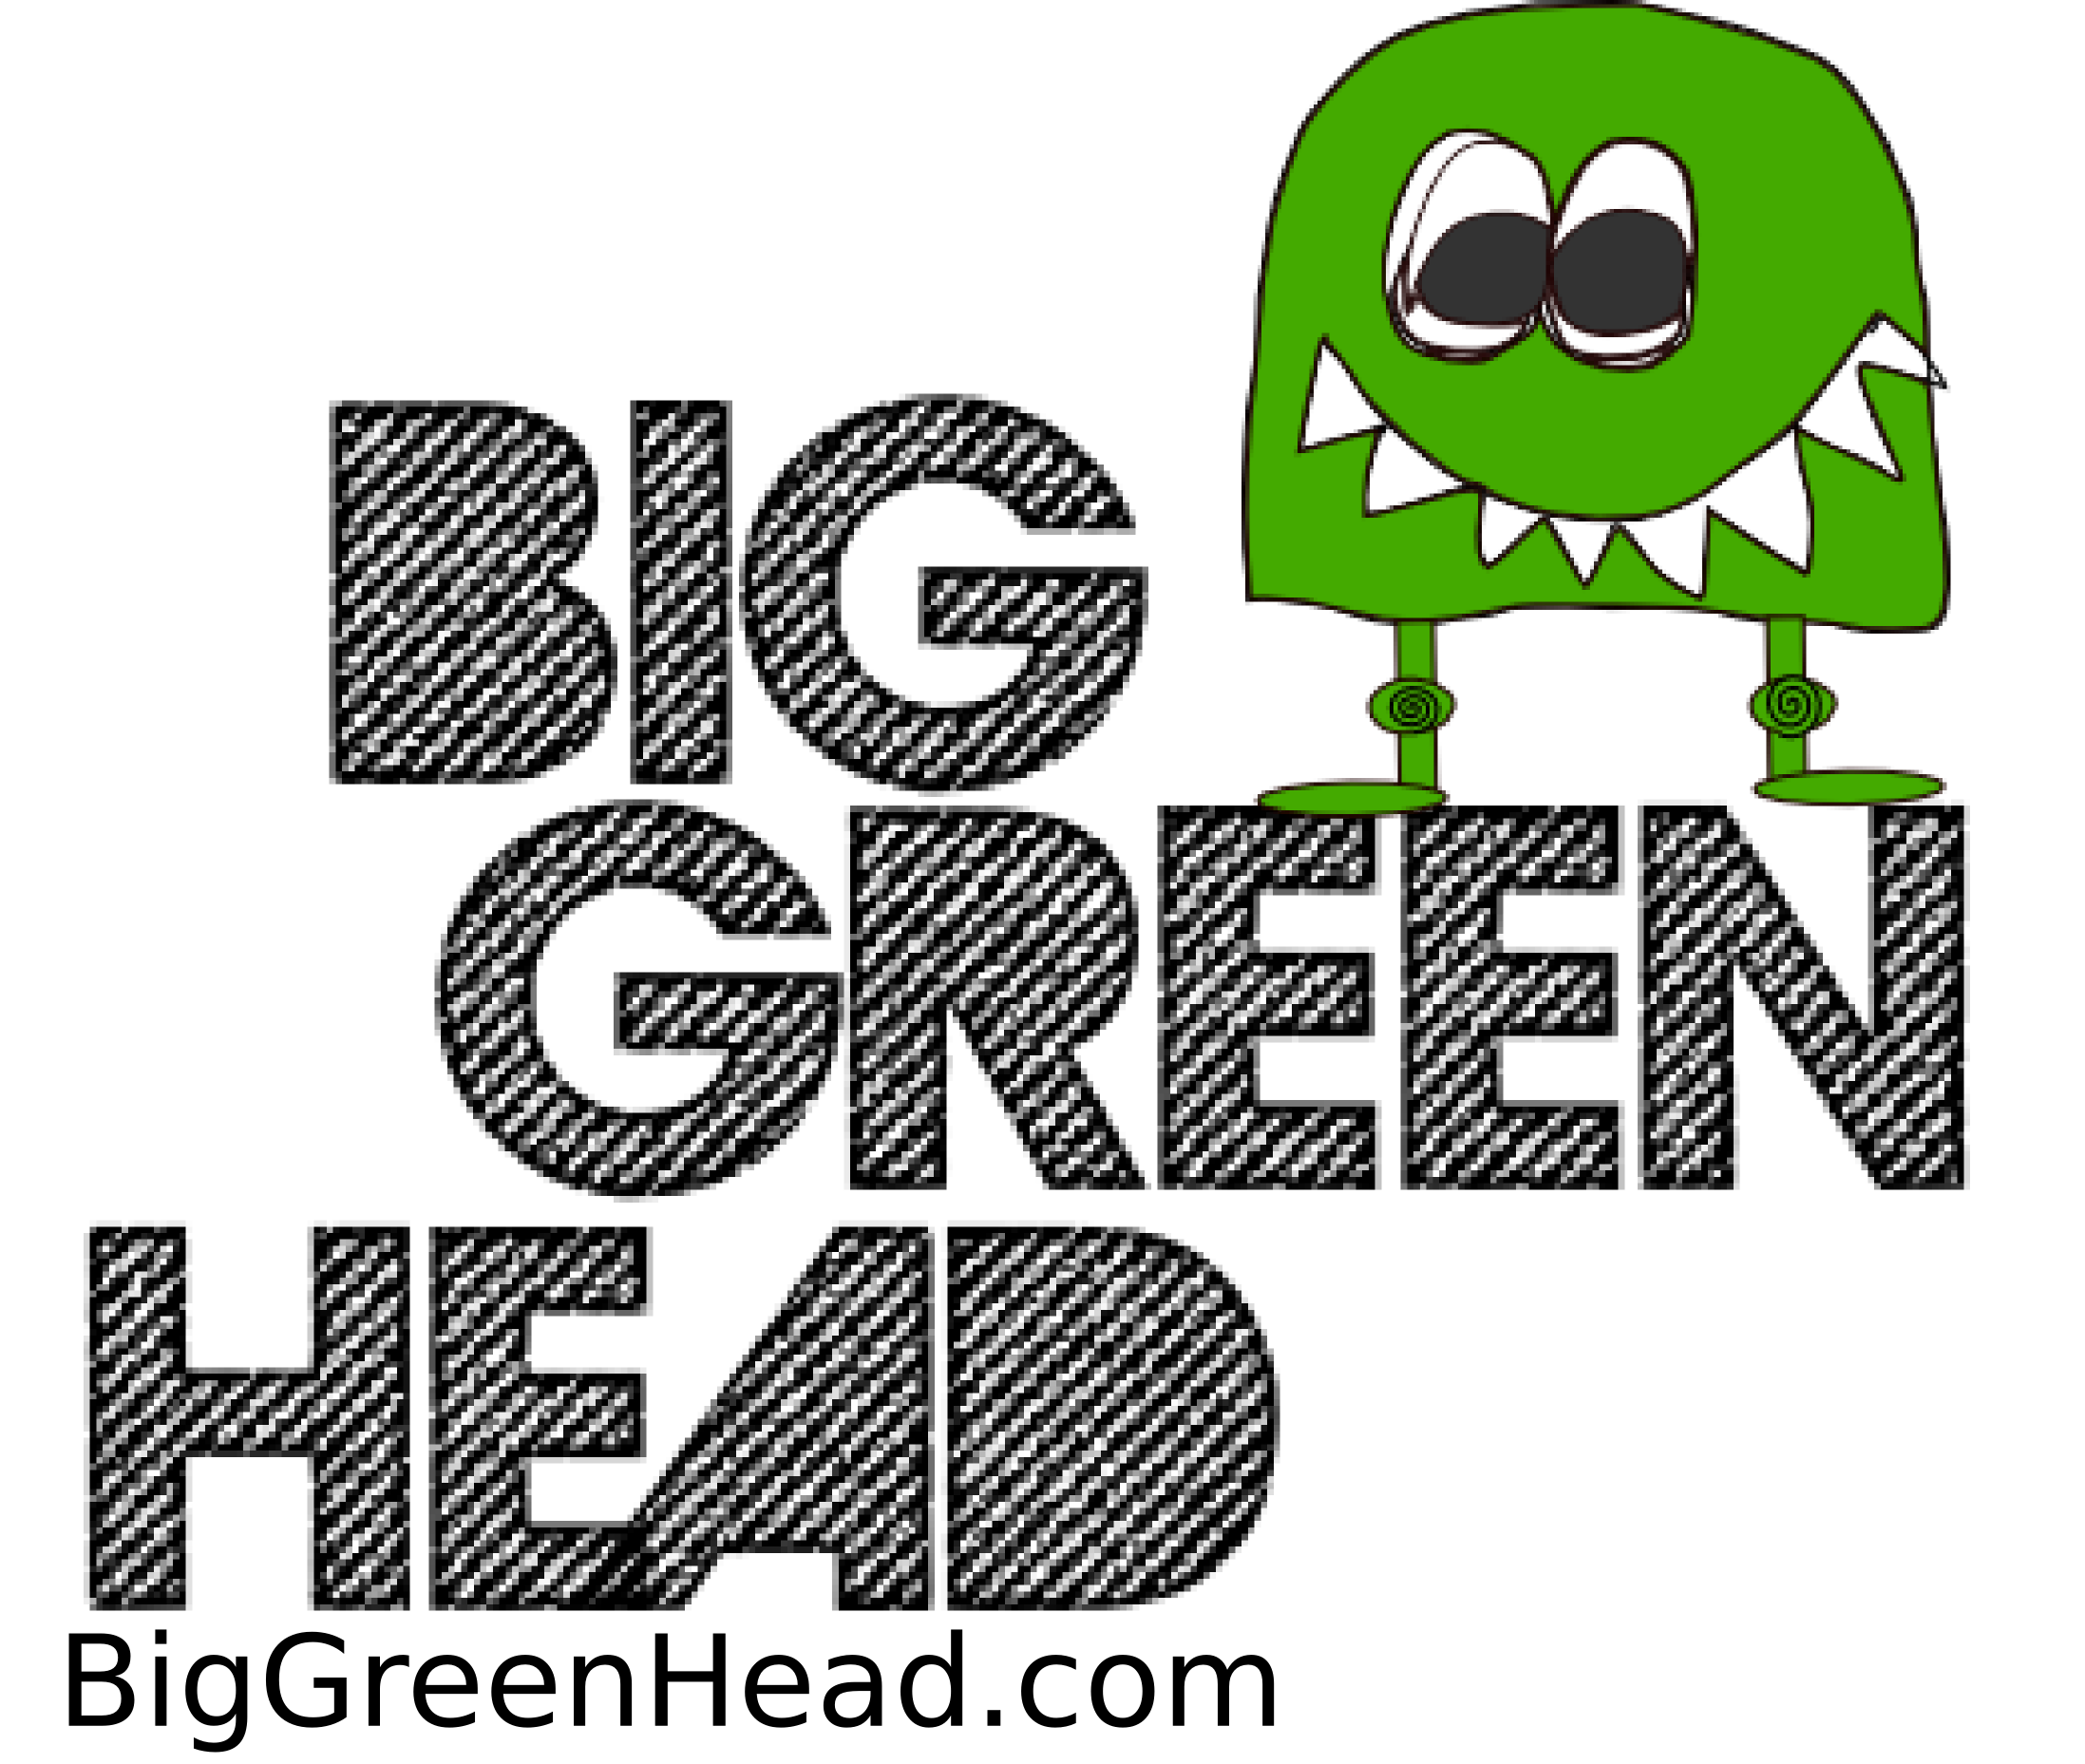 Big Green Head